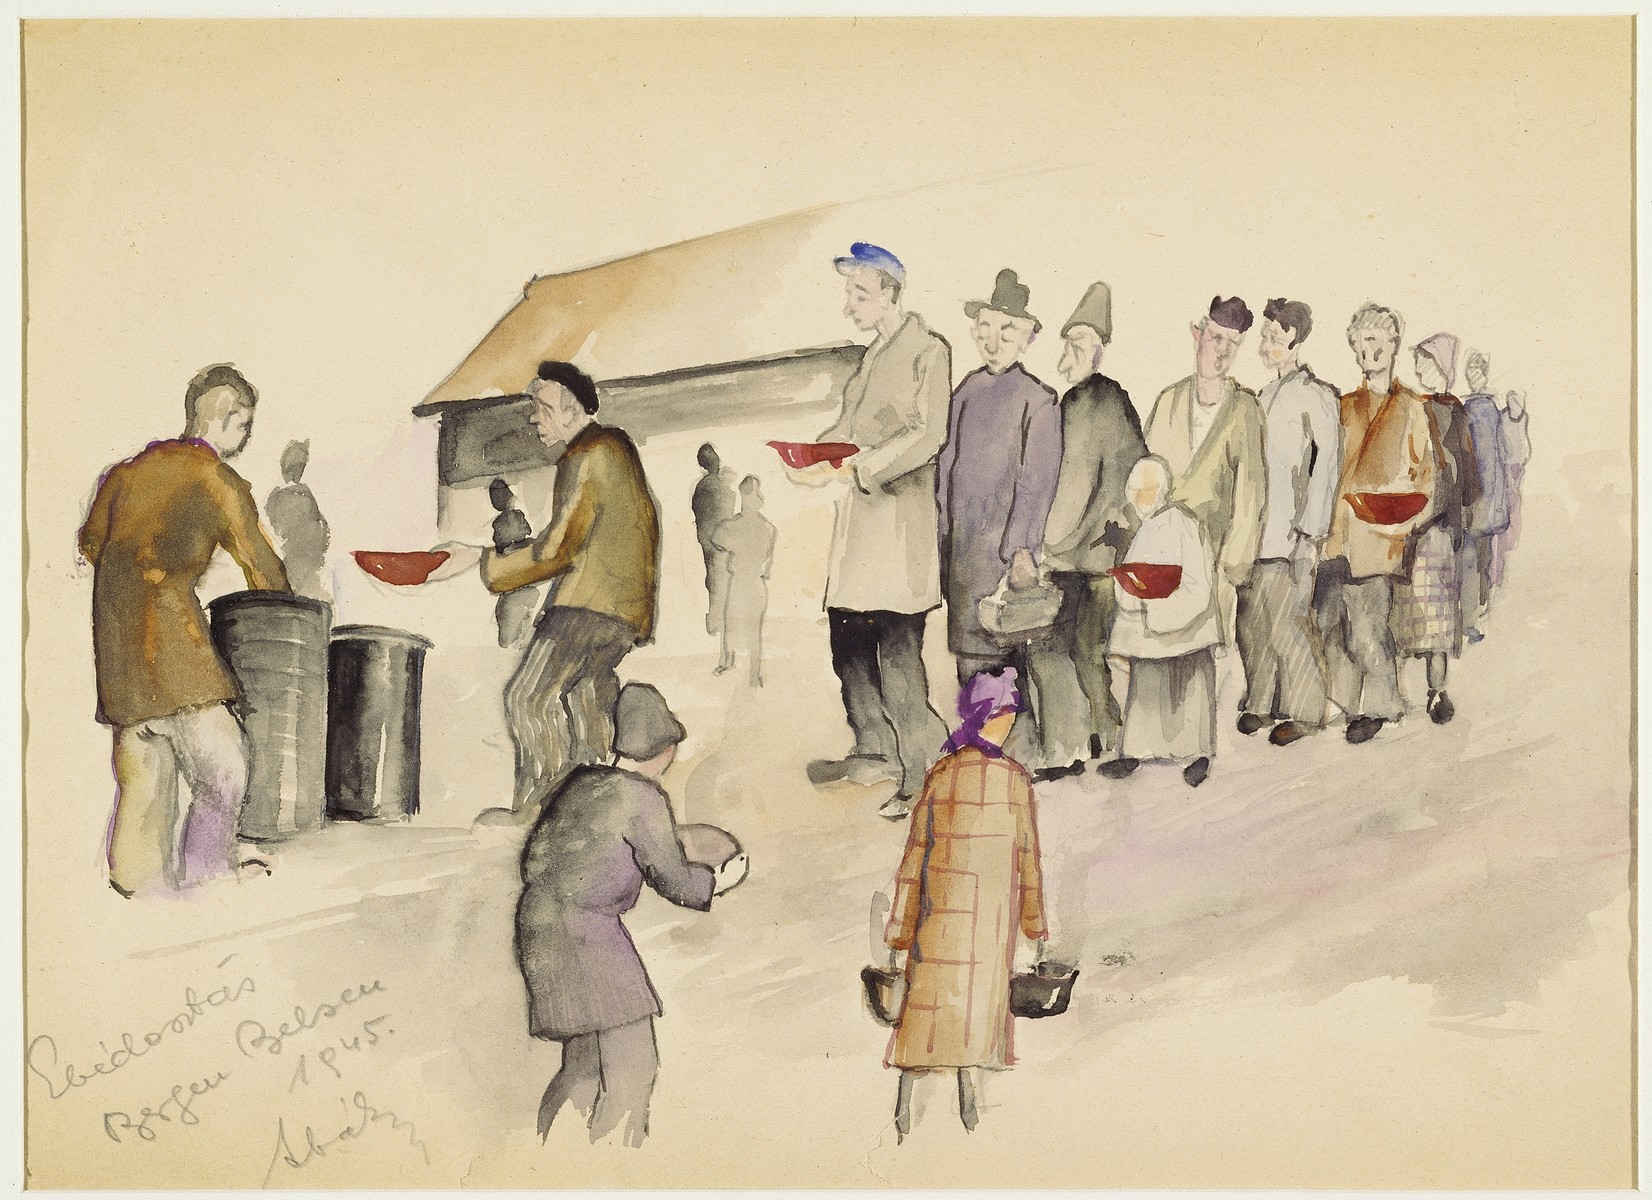 """Distributing Lunch"" by Ervin Abadi. Watercolor, ink and graphite colored pencil drawing.  Ervin Abadi, a Hungarian Jew from Budapest, was an aspiring young artist when WWII began.  He was drafted into the Hungarian labor service in the early 1940s.  Abadi managed to escape, but  was recaptured and immediately deported to Bergen-Belsen.  When the camp was liberated, his condition was such that he required extended hospitalization.  During his convalescence, he created dozens of works of holocaust art, including ink drawings, pencil and ink sketches and  watercolors. After recuperating Abadi returned to Budapest, where he published a collection of his watercolors in 1946.  After becoming disillusioned with the communist regime in Hungary, he moved to Israel, where he continued to publish in Hungarian and Hebrew.  He died in Israel in 1980."